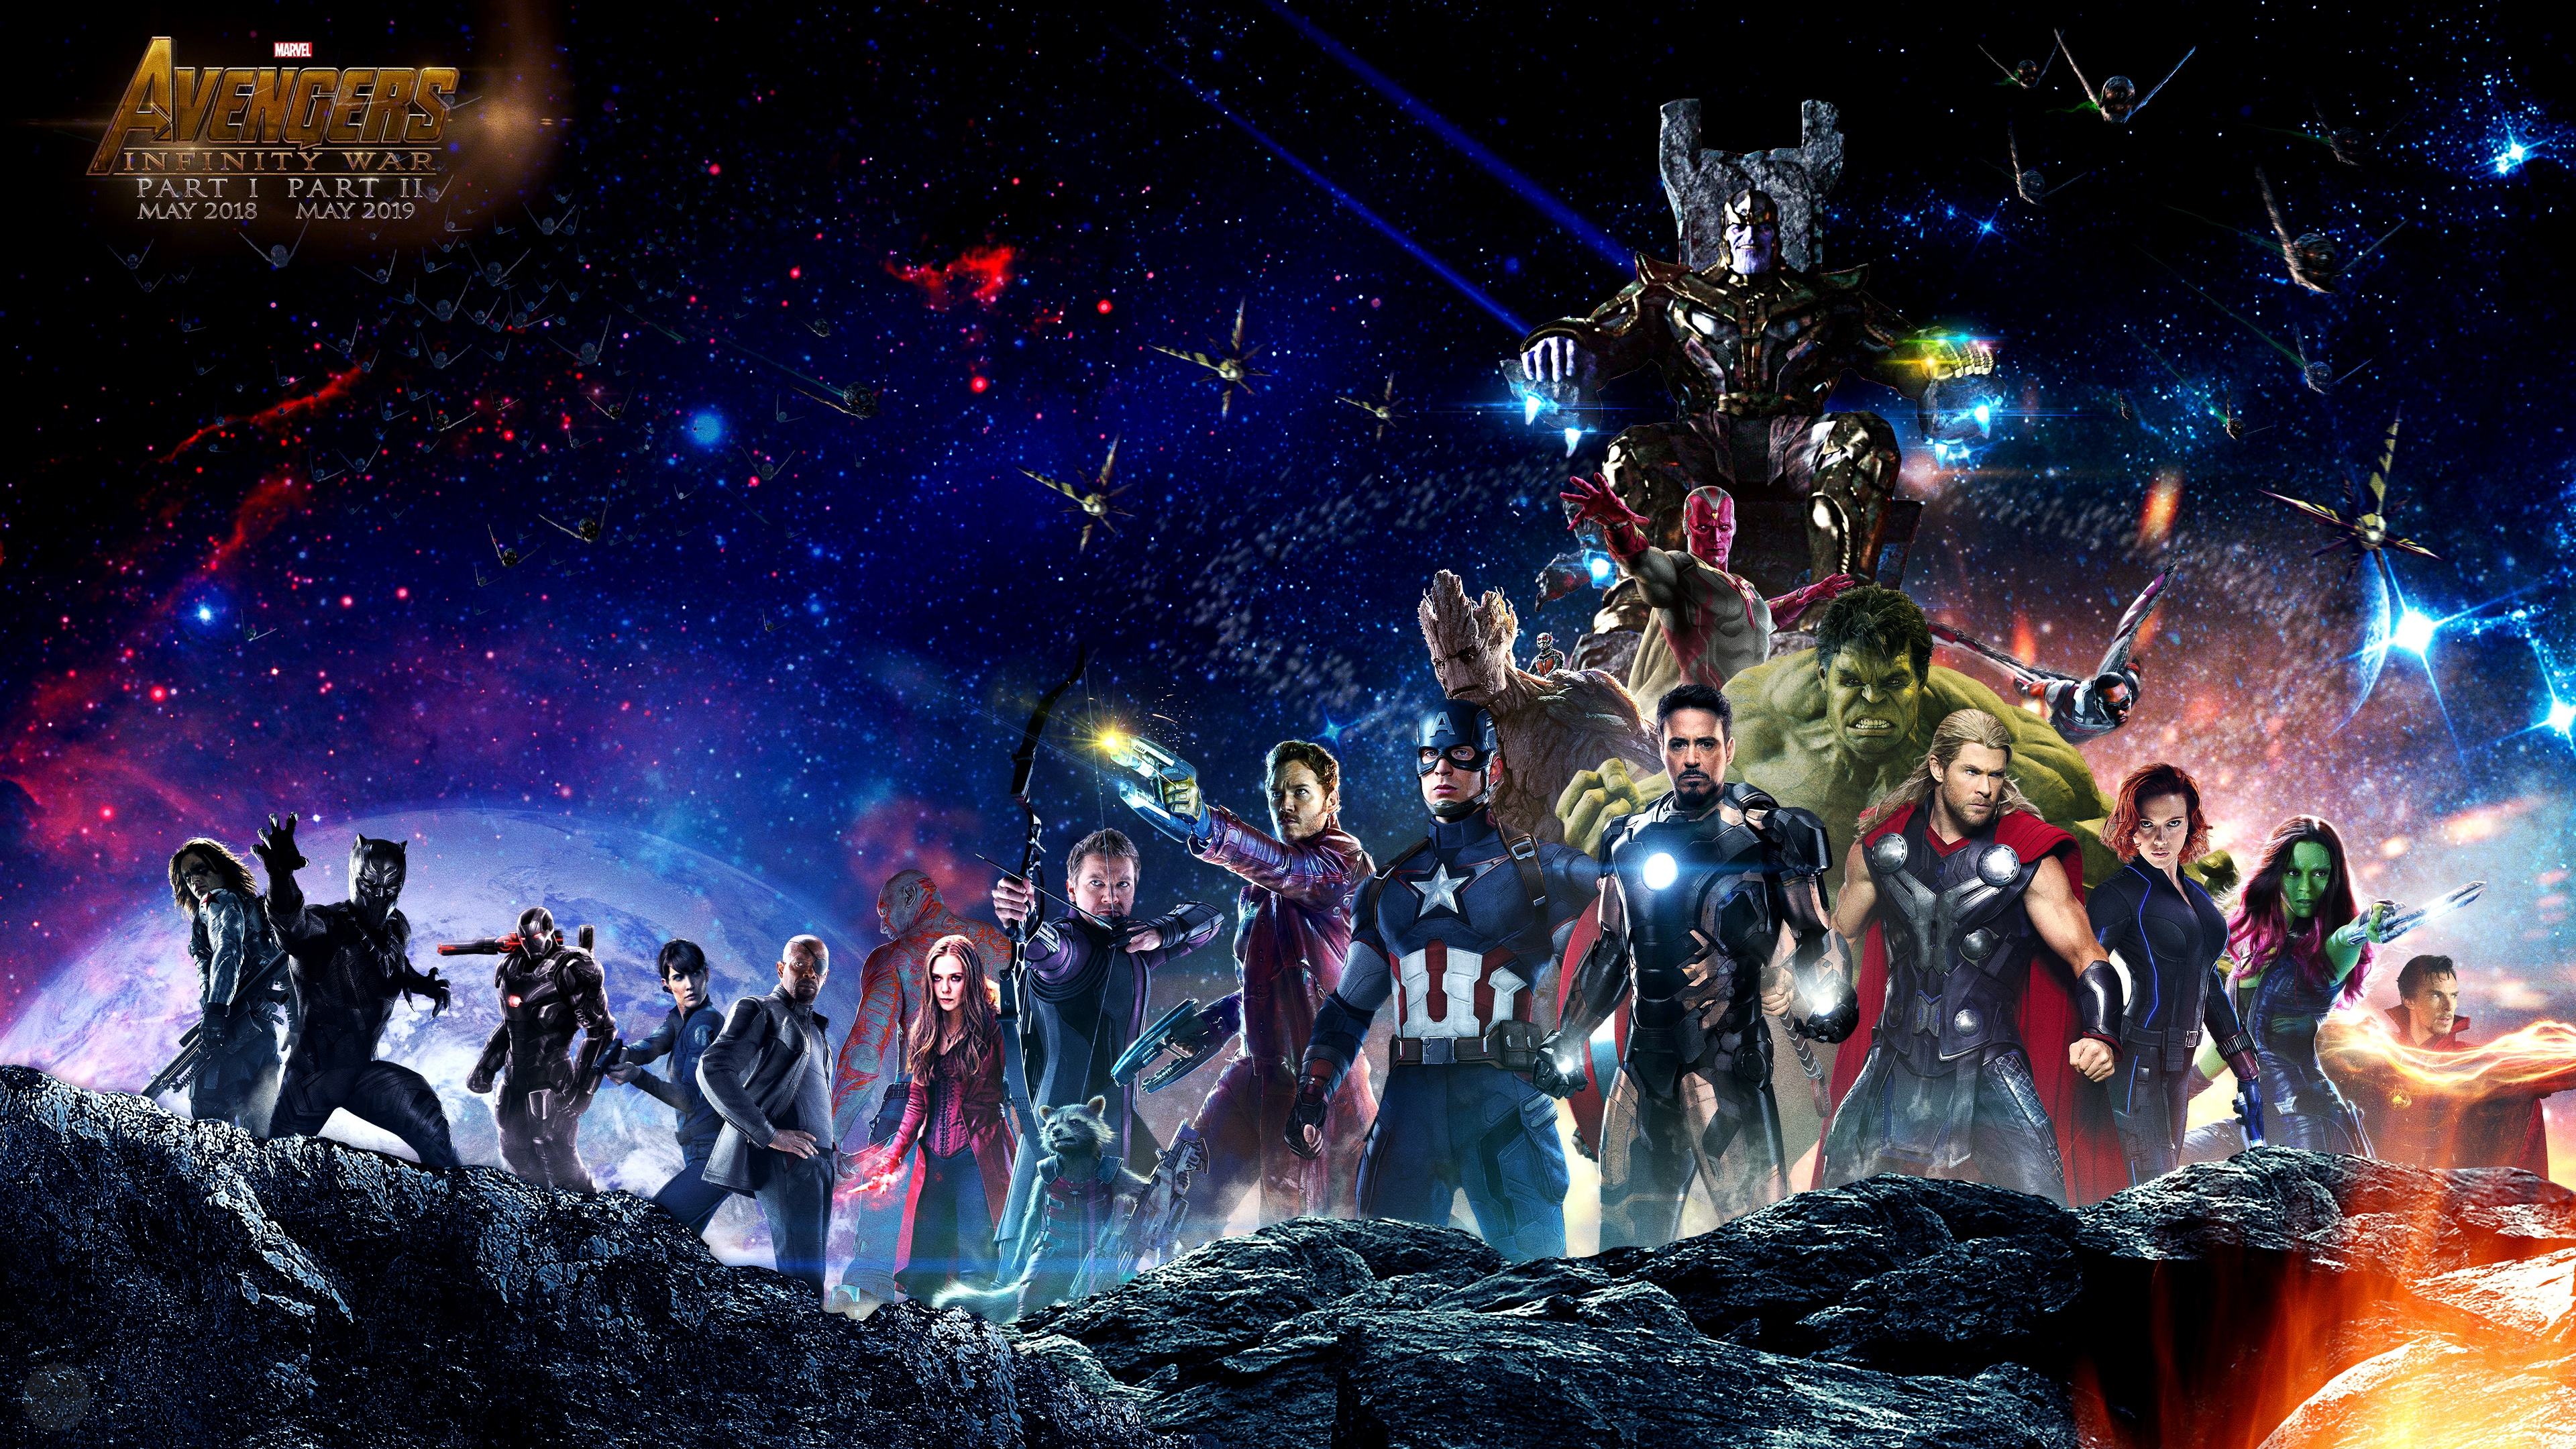 Avengers Superhero Infinity War 4K UHD Download